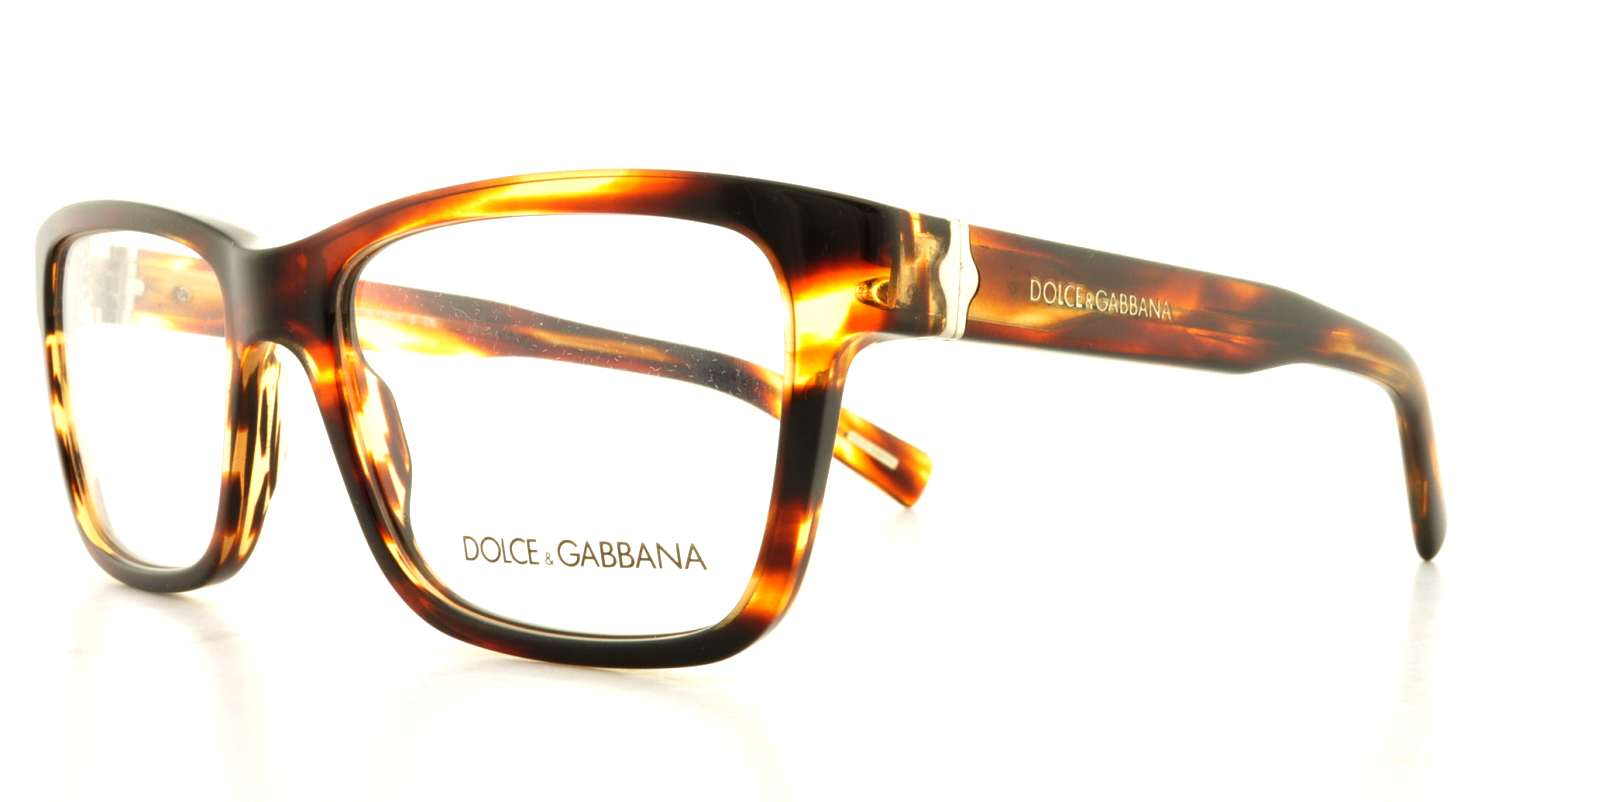 927682b44b Dolce And Gabbana Eyeglasses Warranty - Bitterroot Public Library